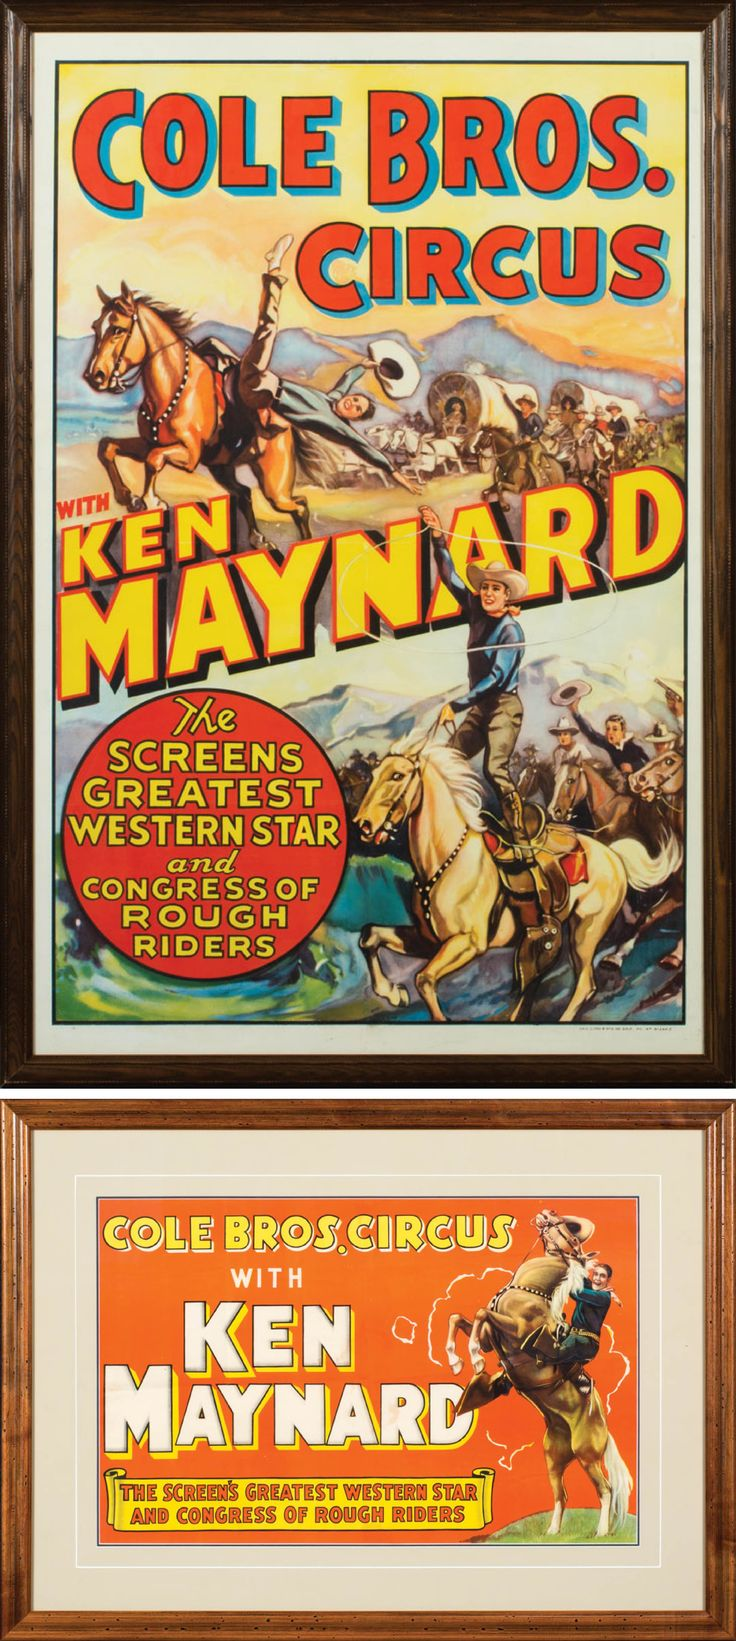 "Two Cole Bros Circus with Ken Maynard Posters Lot of 2 original lithograph movie posters for Cole Bros Circus with Tom Maynard: a) ""Cole Bros. Circus, with Ken Maynard, The Screen's Greatest Western Star and Congress of Rough Riders"". Bright graphic of Maynard on his Wonder Horse, Tarzan. b) ""Cole Bros. Circus, with Ken Maynard, The Screen's Greatest Western Star and Congress of Rough Riders"". 42"" x 27"" framed to 44"" x 29 1⁄2"". The graphics depict Maynard performing stunts with his horse…"